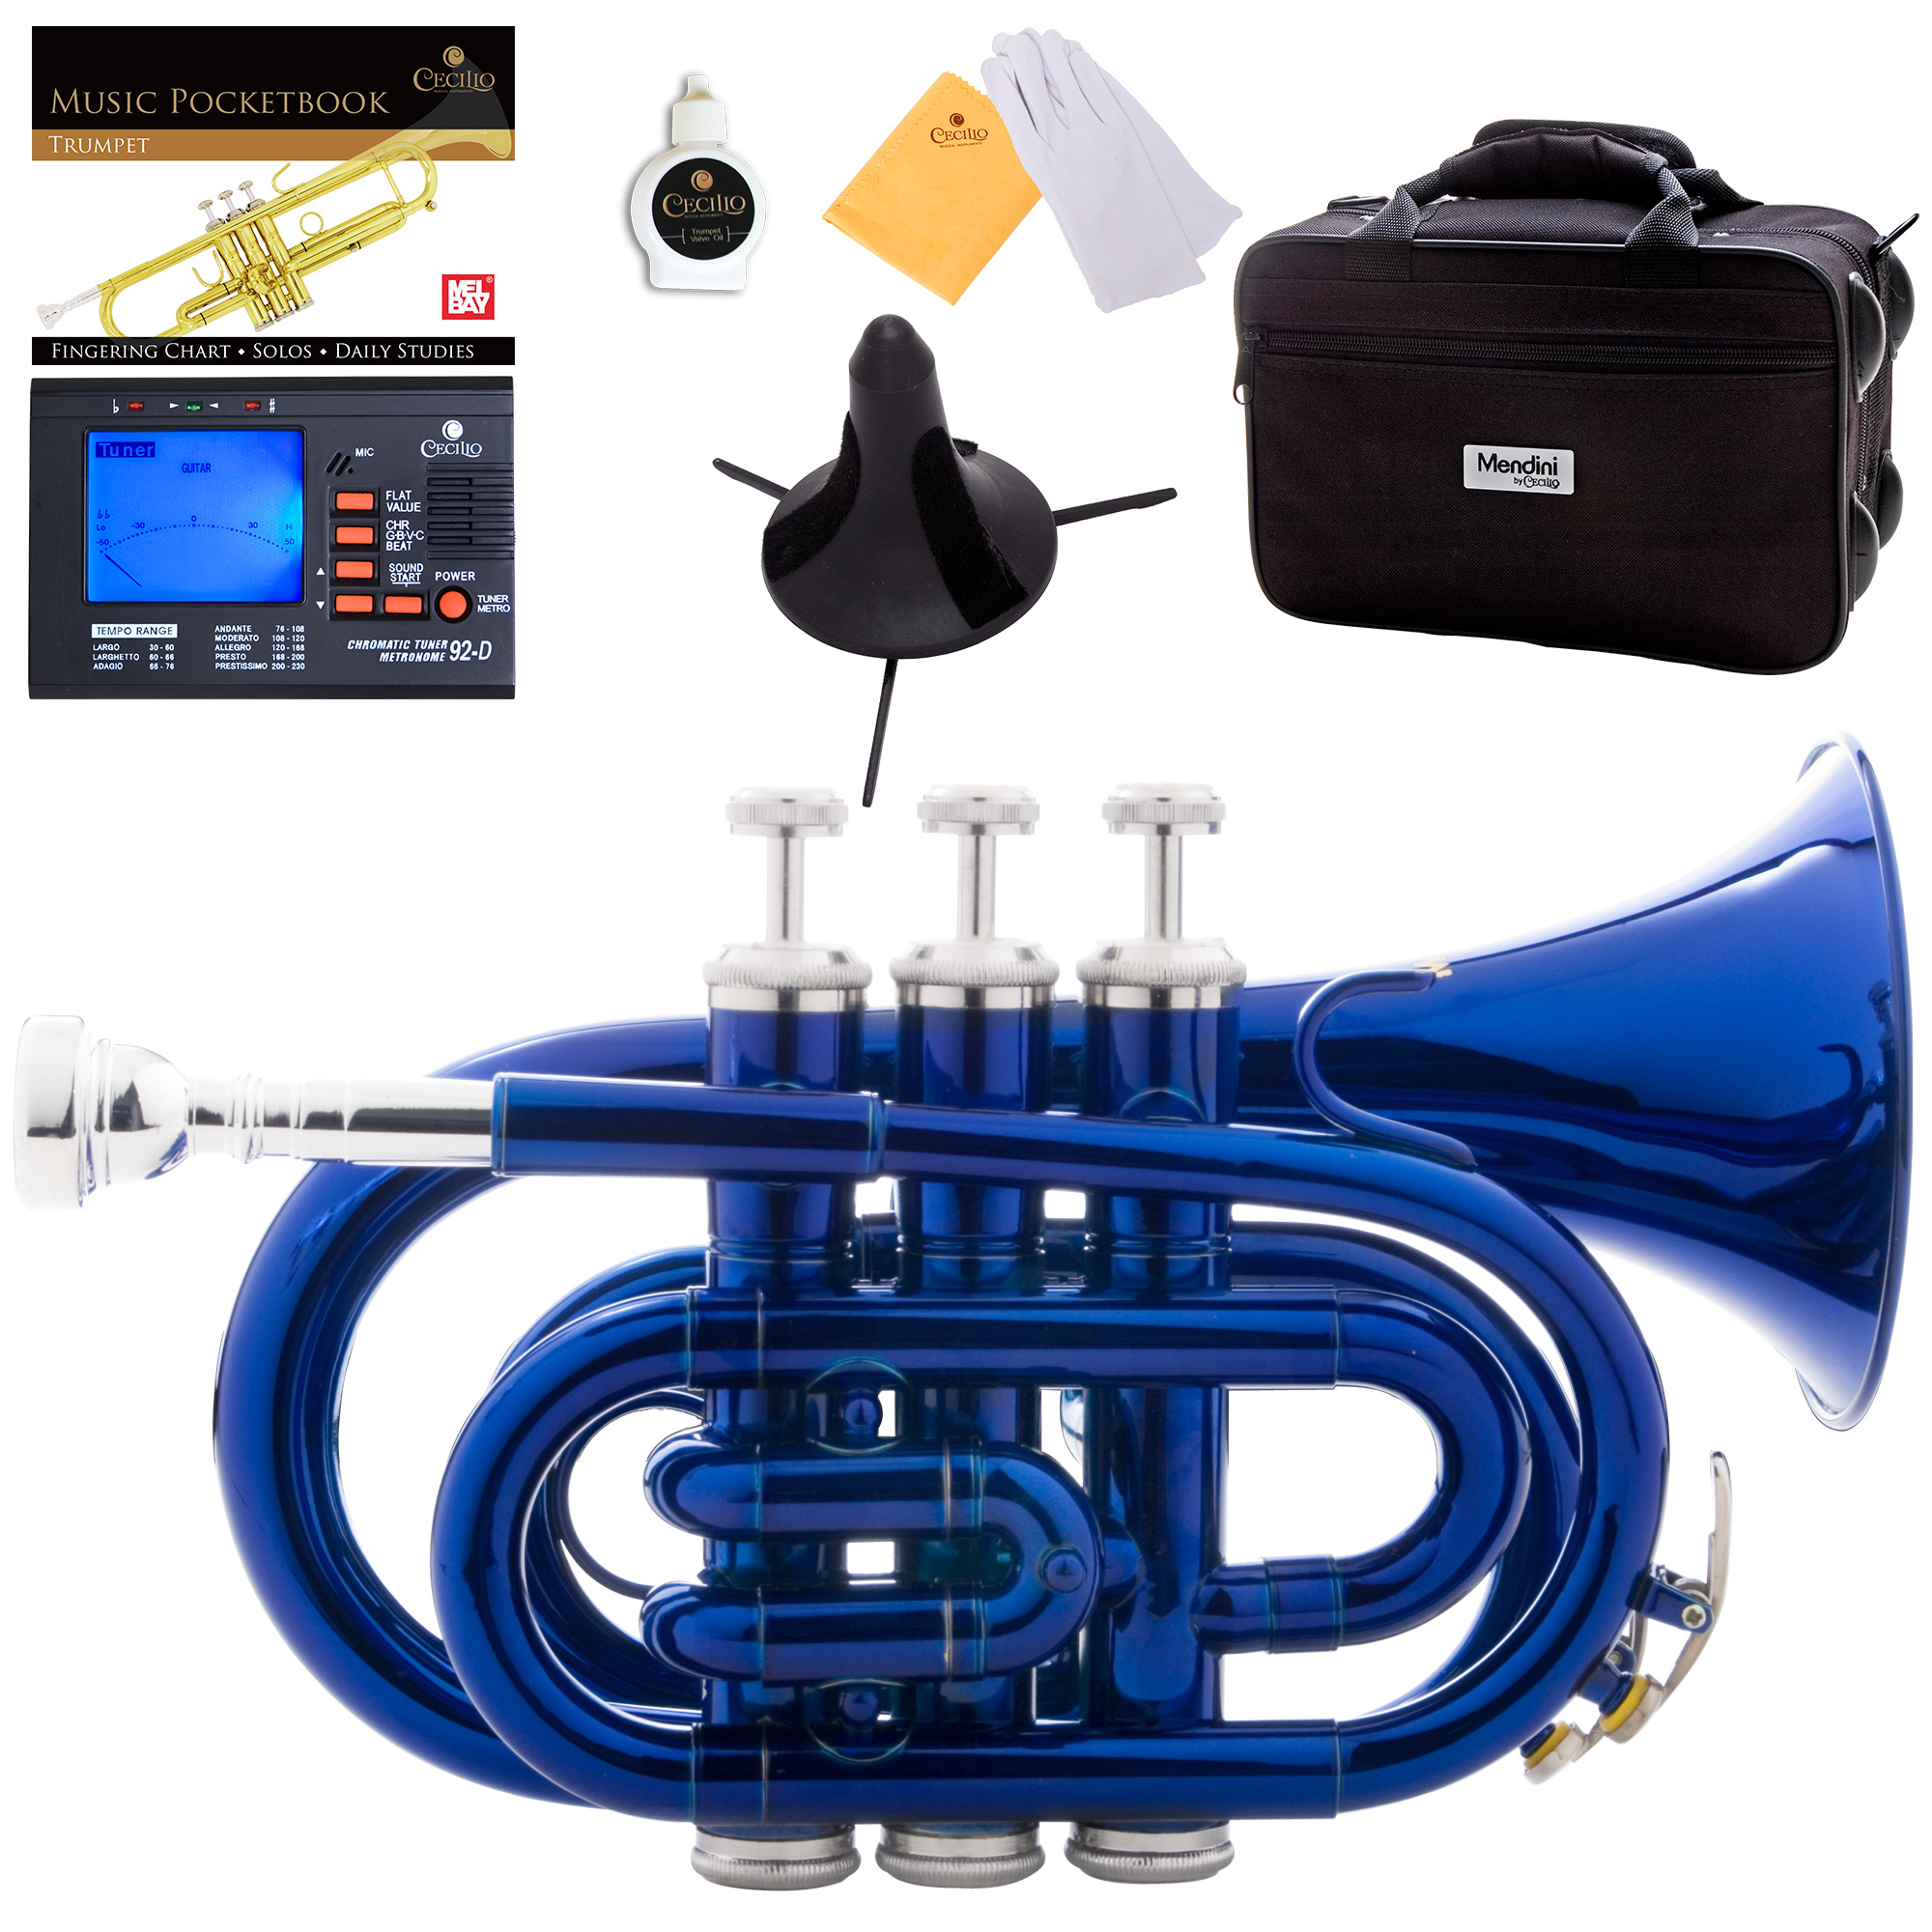 Mendini by Cecilio Blue Bb Pocket Trumpet w/1 Year Warranty, Tuner, Stand, Pocketbook and Deluxe Case, MPT-BL